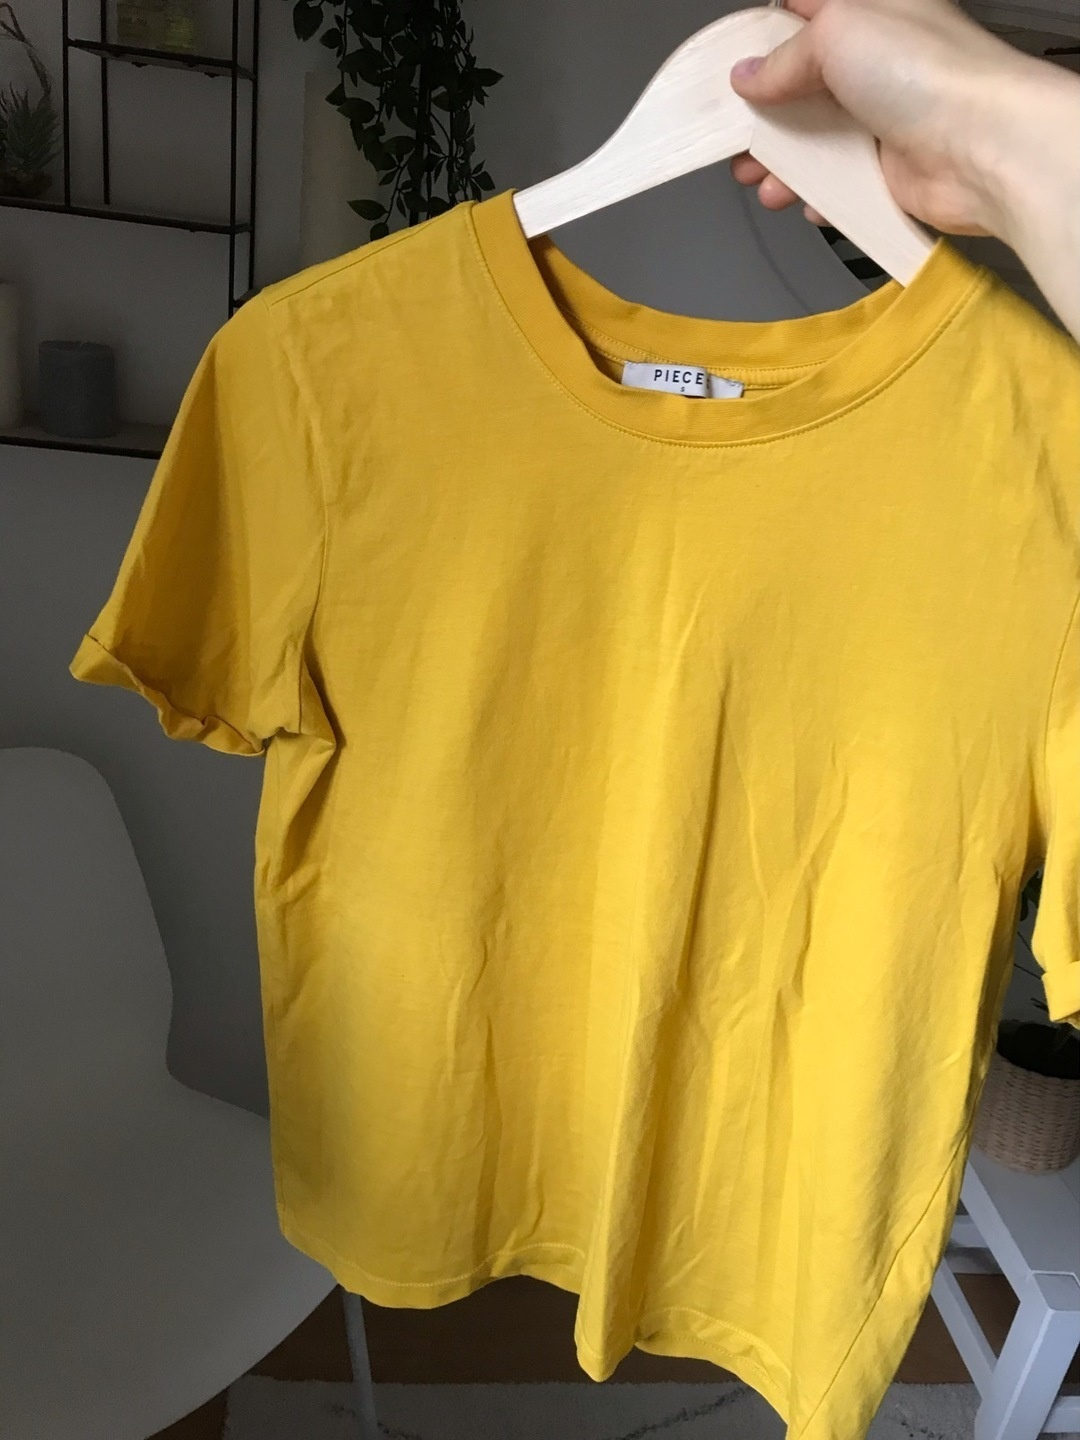 Women's tops & t-shirts - PIECES photo 2